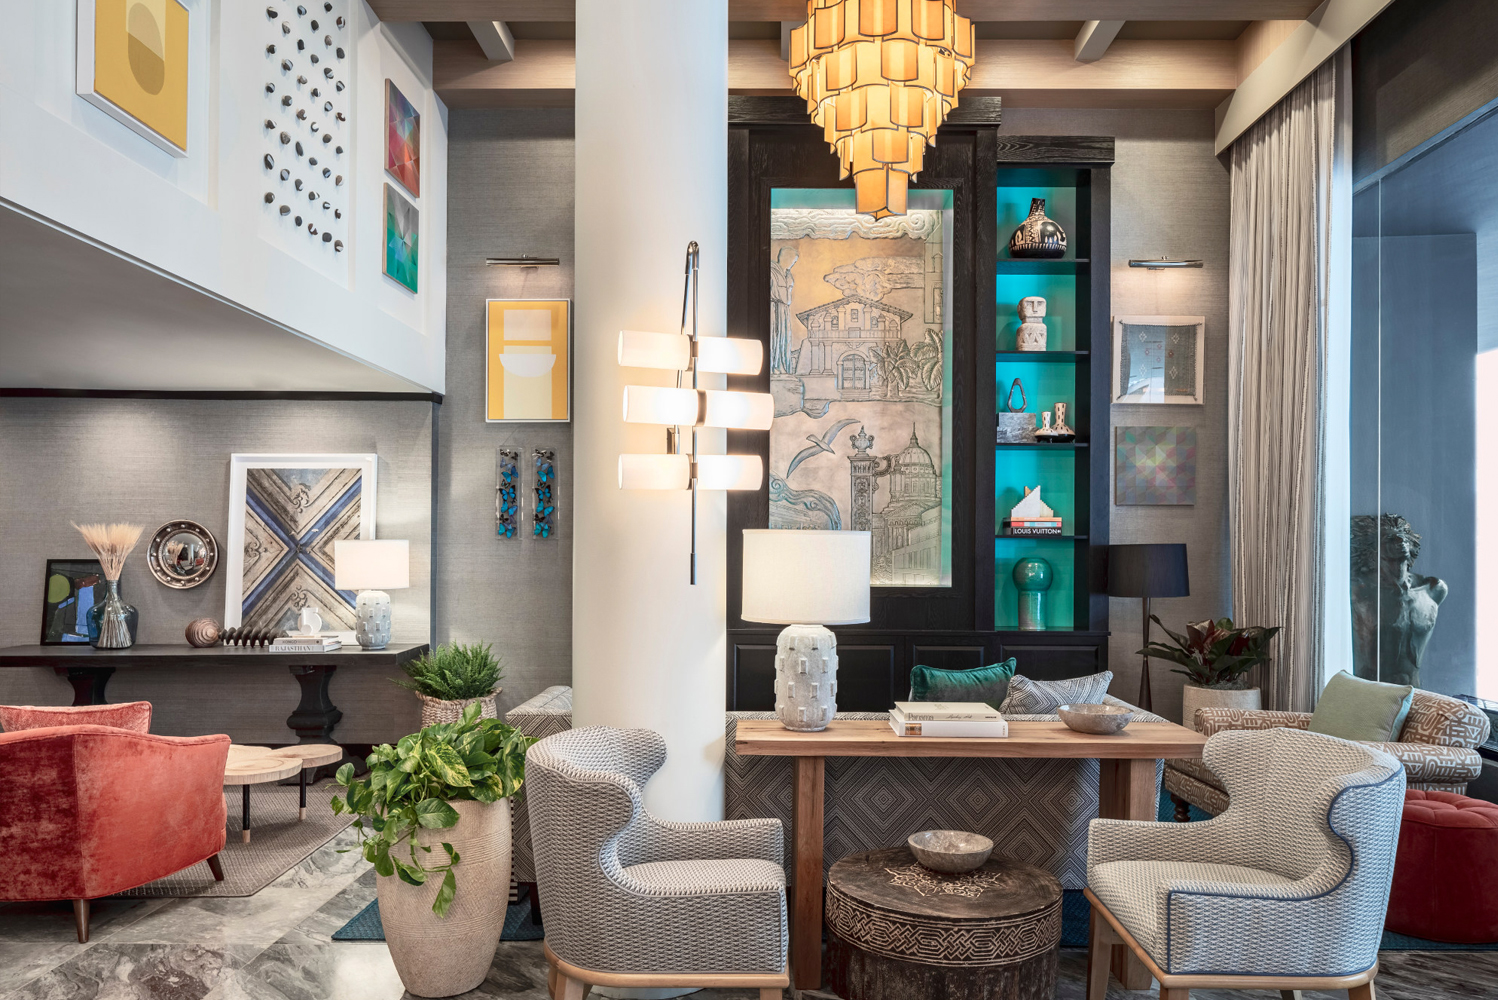 San Francisco's Hotel Triton unveiled its renovated interiors by designer Liubasha Rose and her team at Rose Ink Workshop.